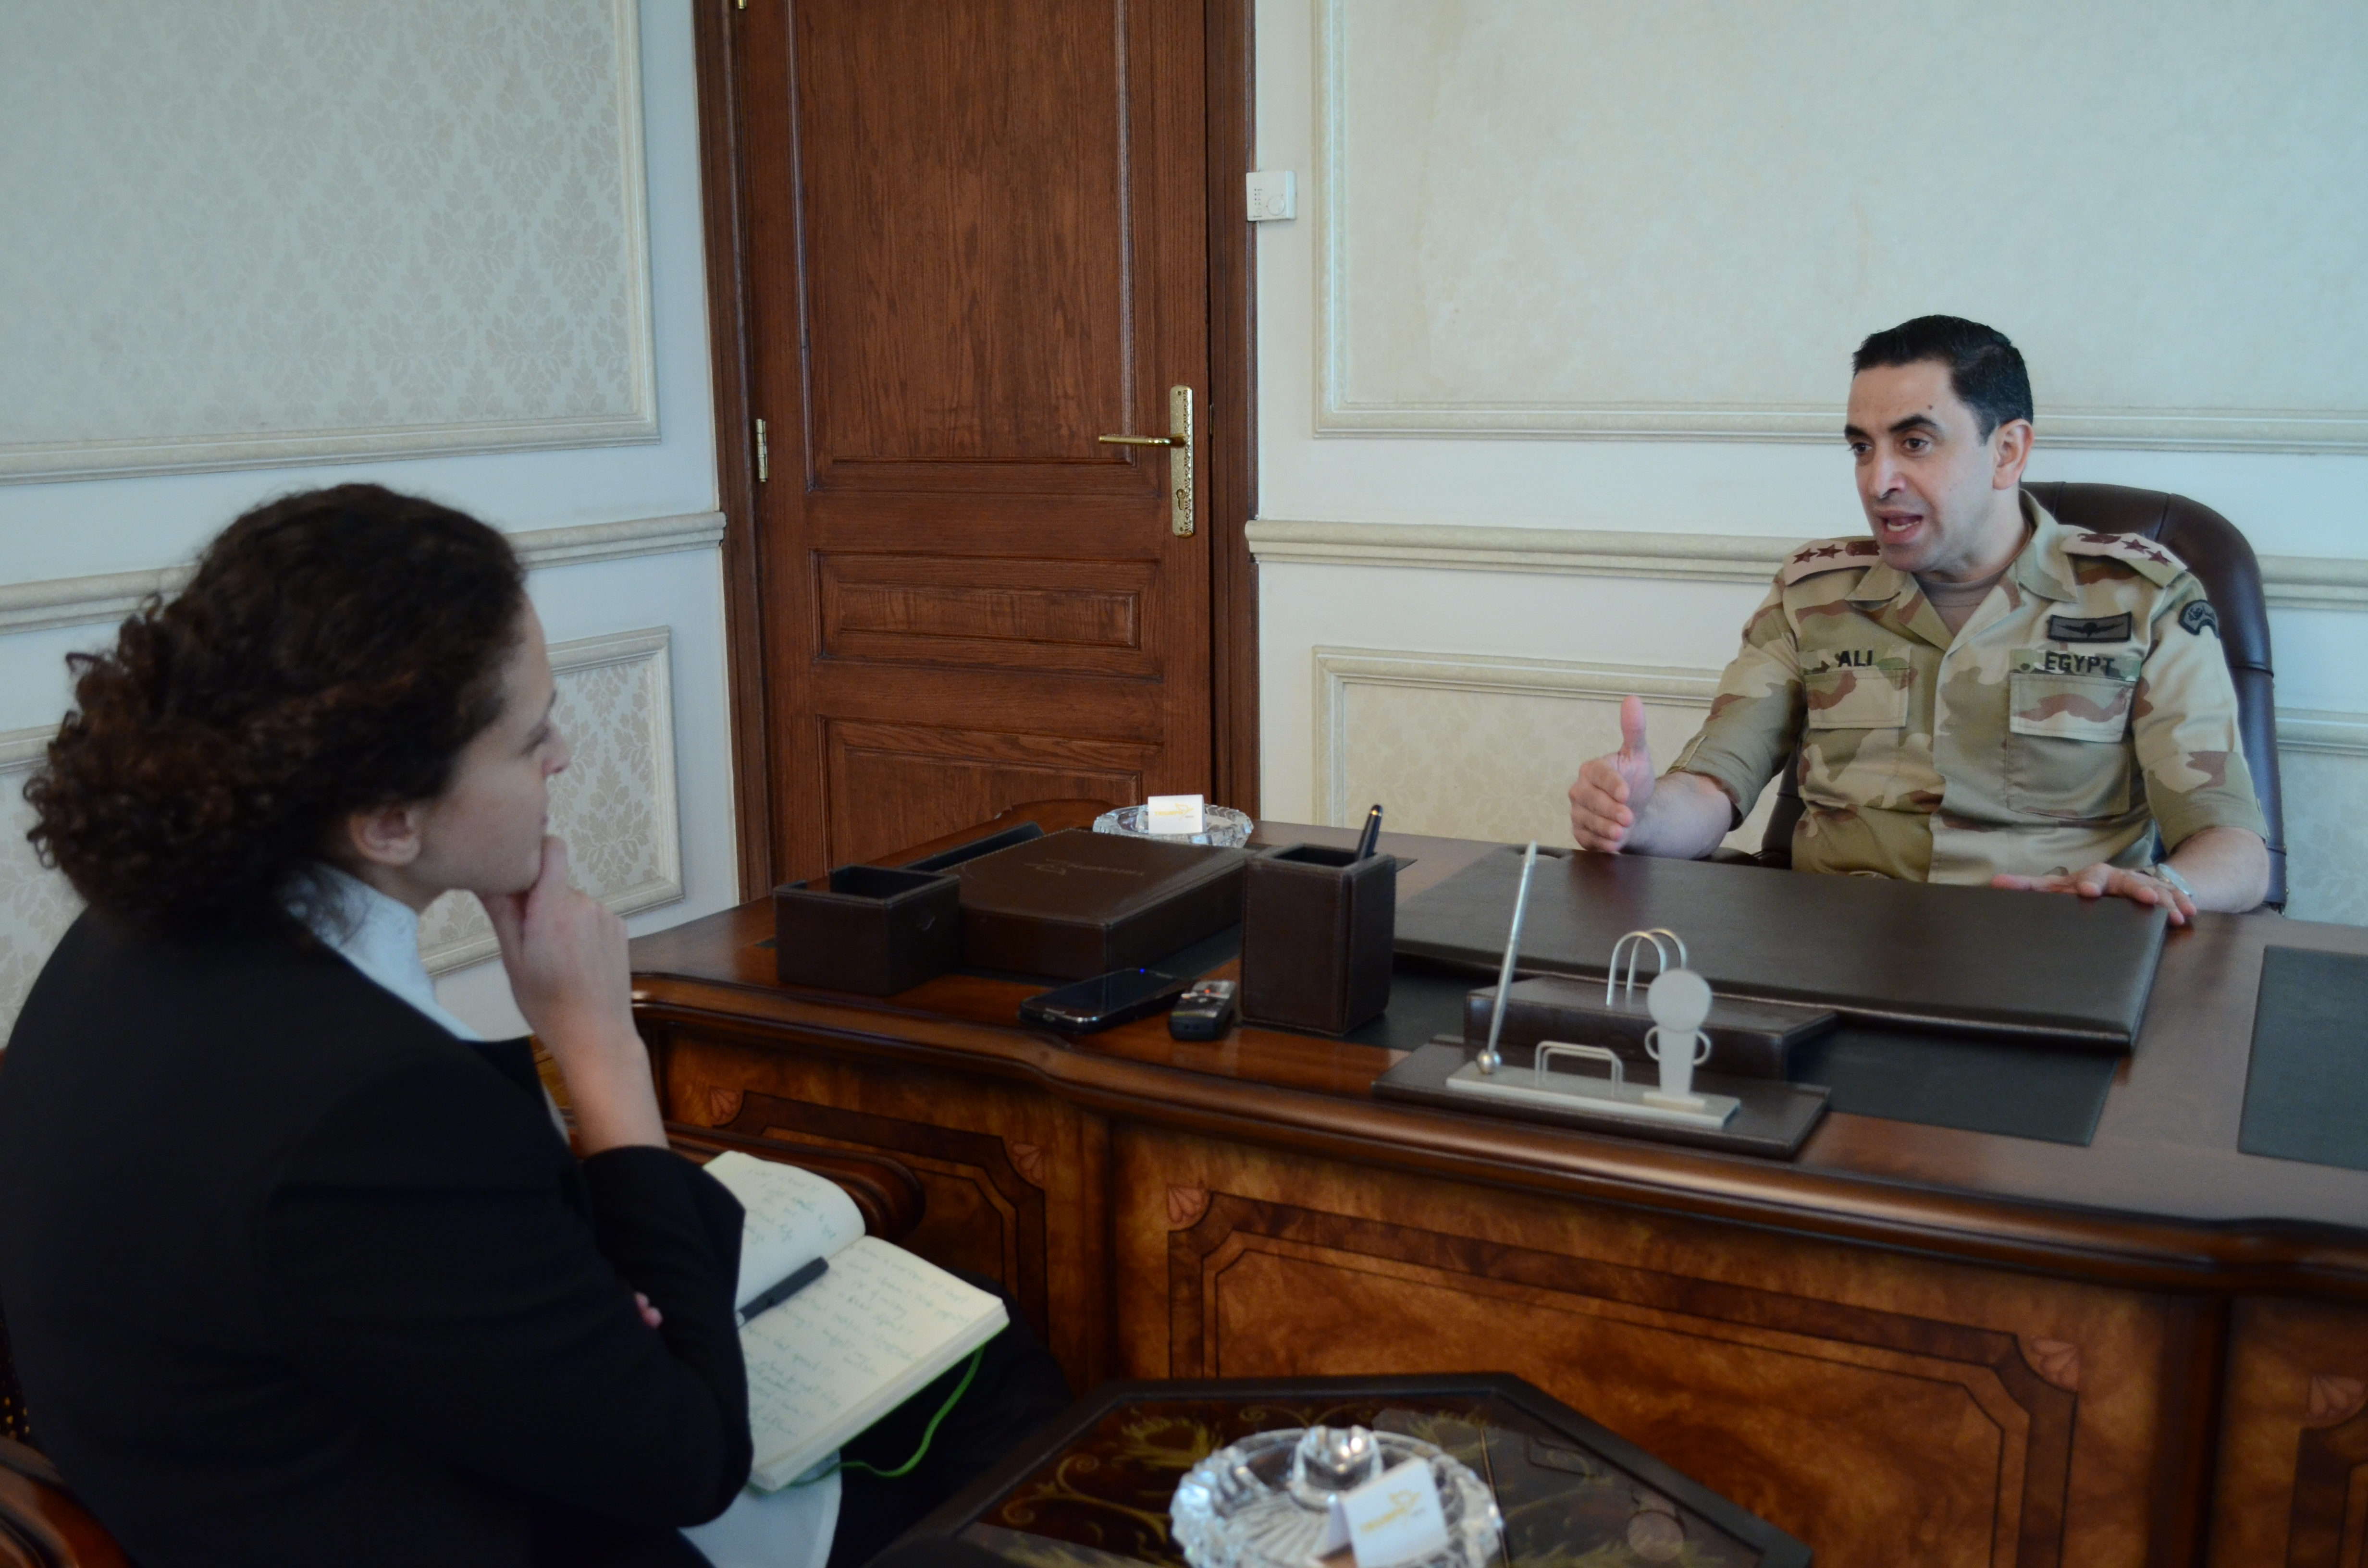 Daily News Egypt sat down with the official spokesman of the armed forces, Colonel Ahmed Ali, for an in-depth discussion of the situation (Photo by Haleem ElShaarany)